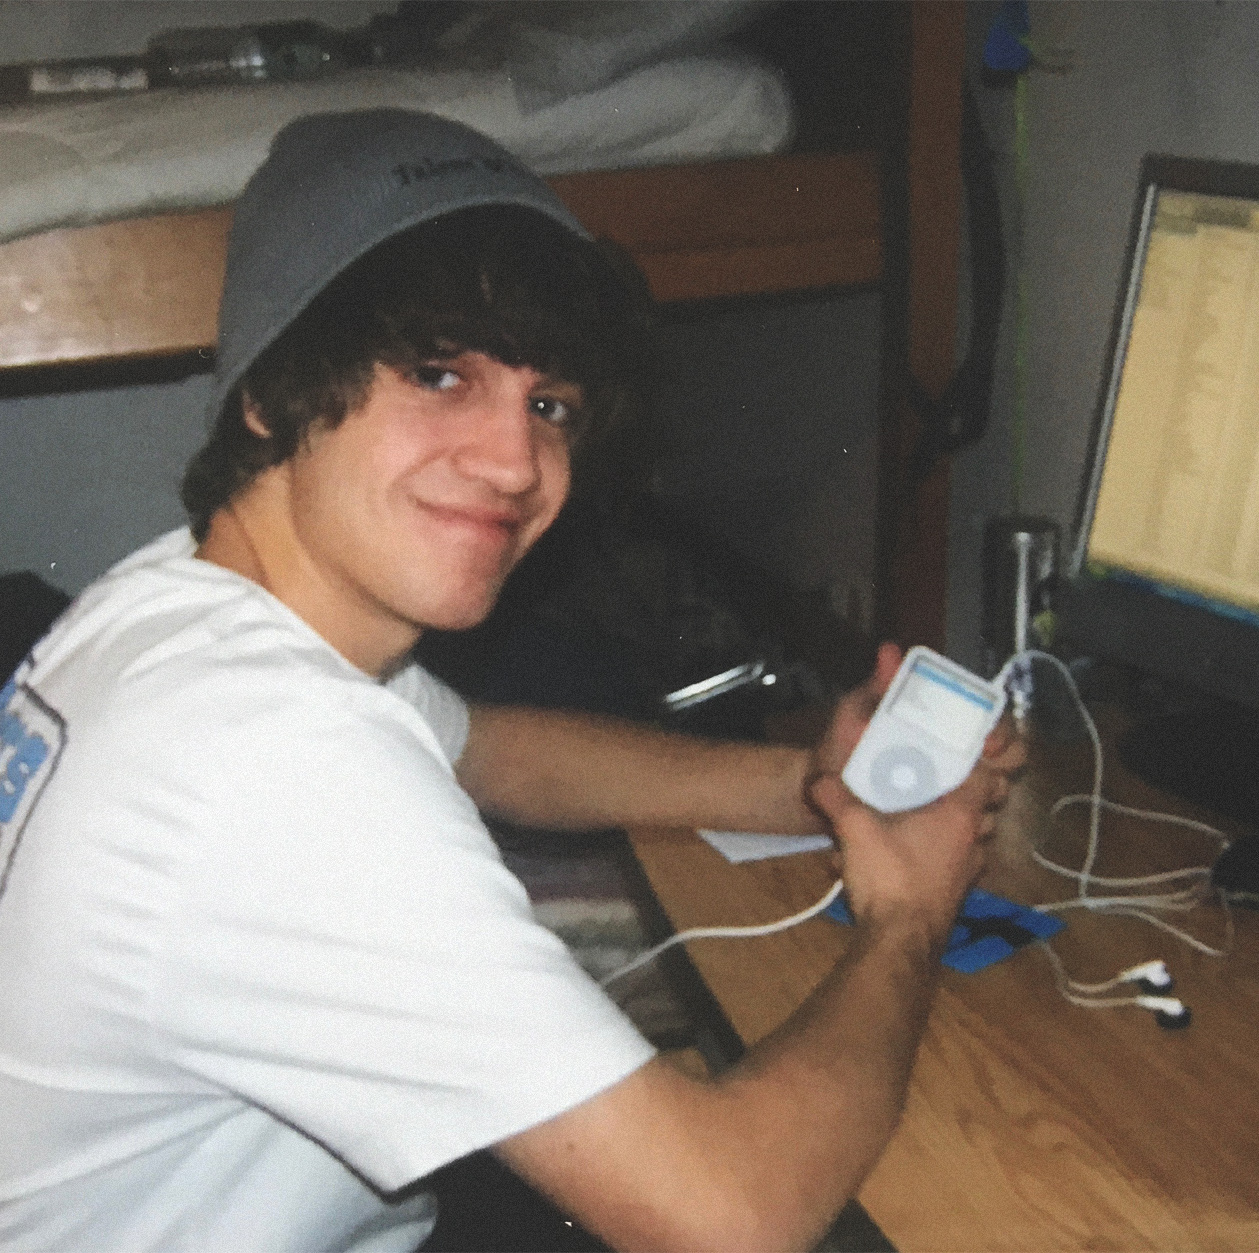 Back in high school. That's the very first computer I started editing on.